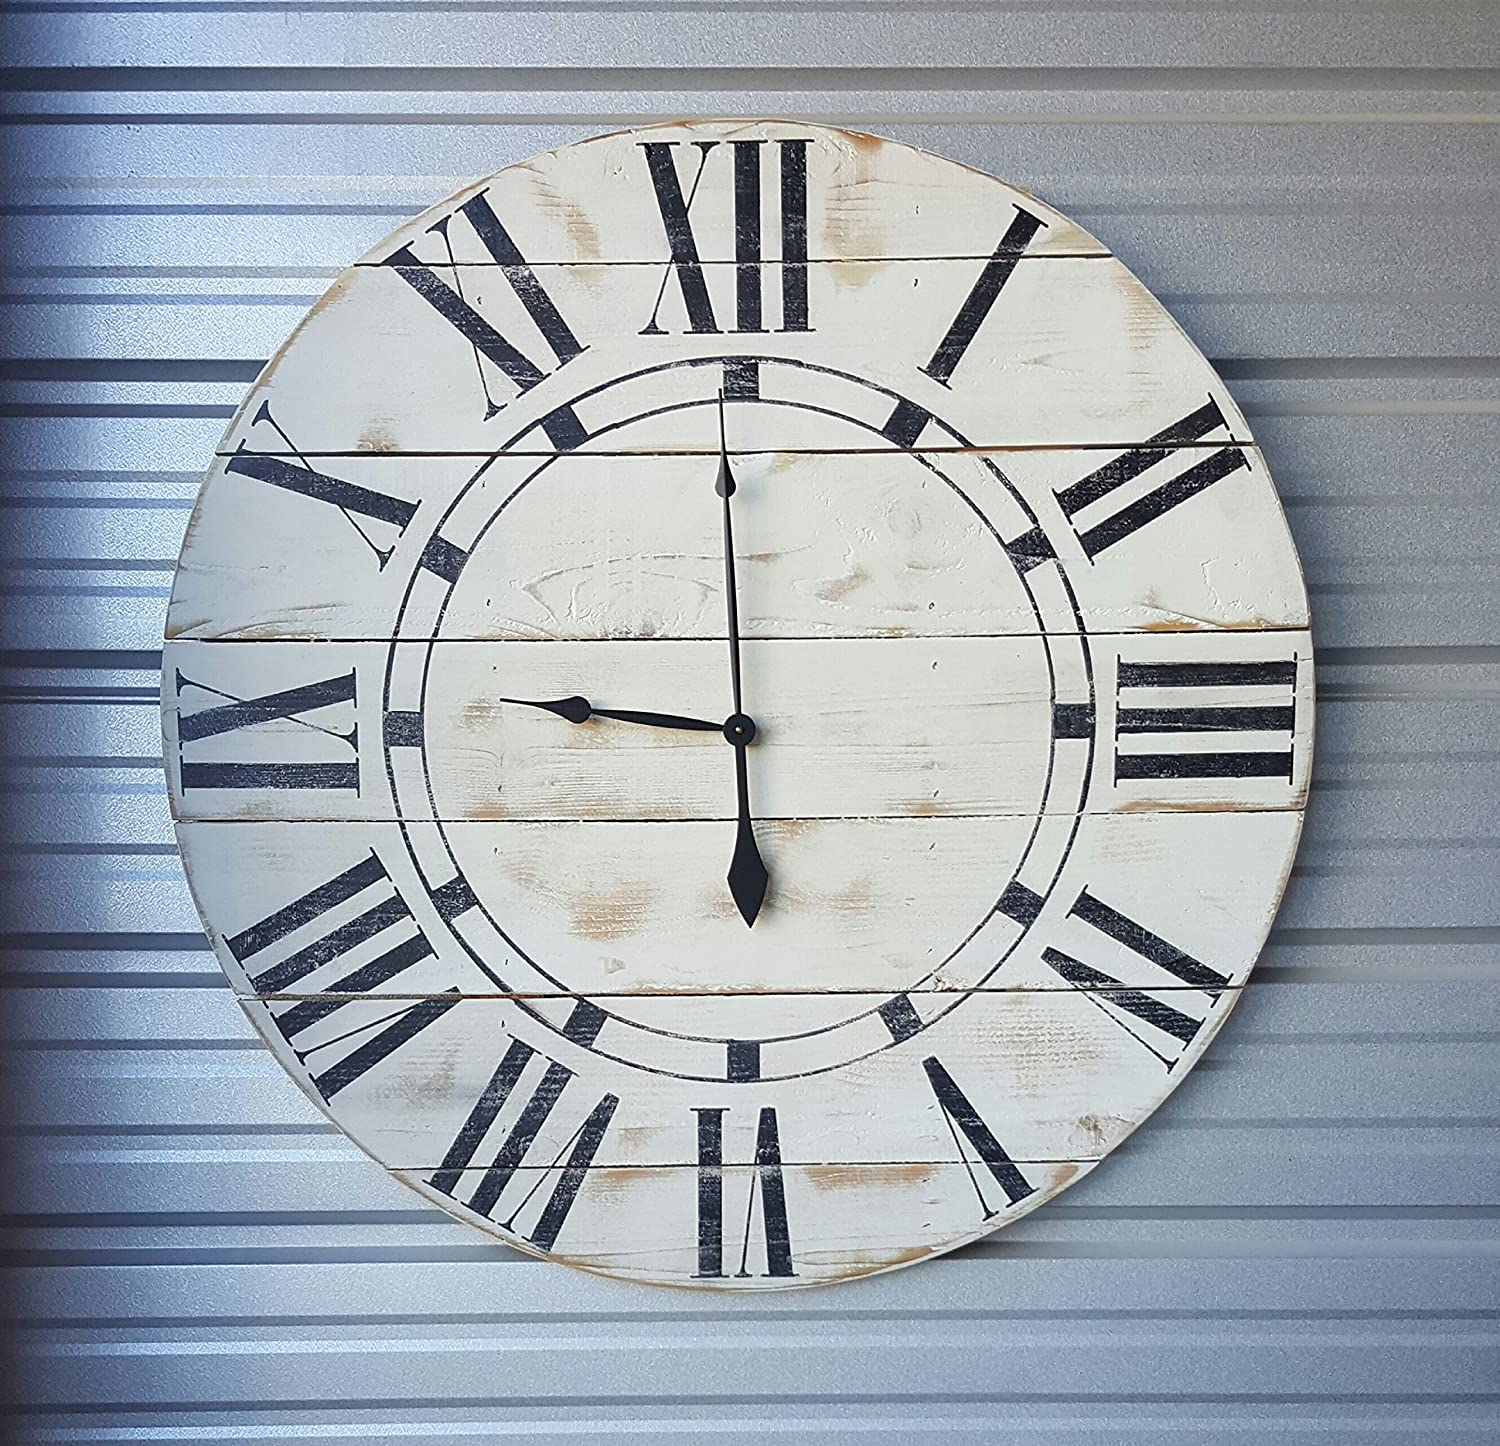 Amazon 29in riley wood wall clock fixer upper style clock amazon 29in riley wood wall clock fixer upper style clock farmhouse wall clock with distressed white finish and black roman numerals handmade amipublicfo Gallery